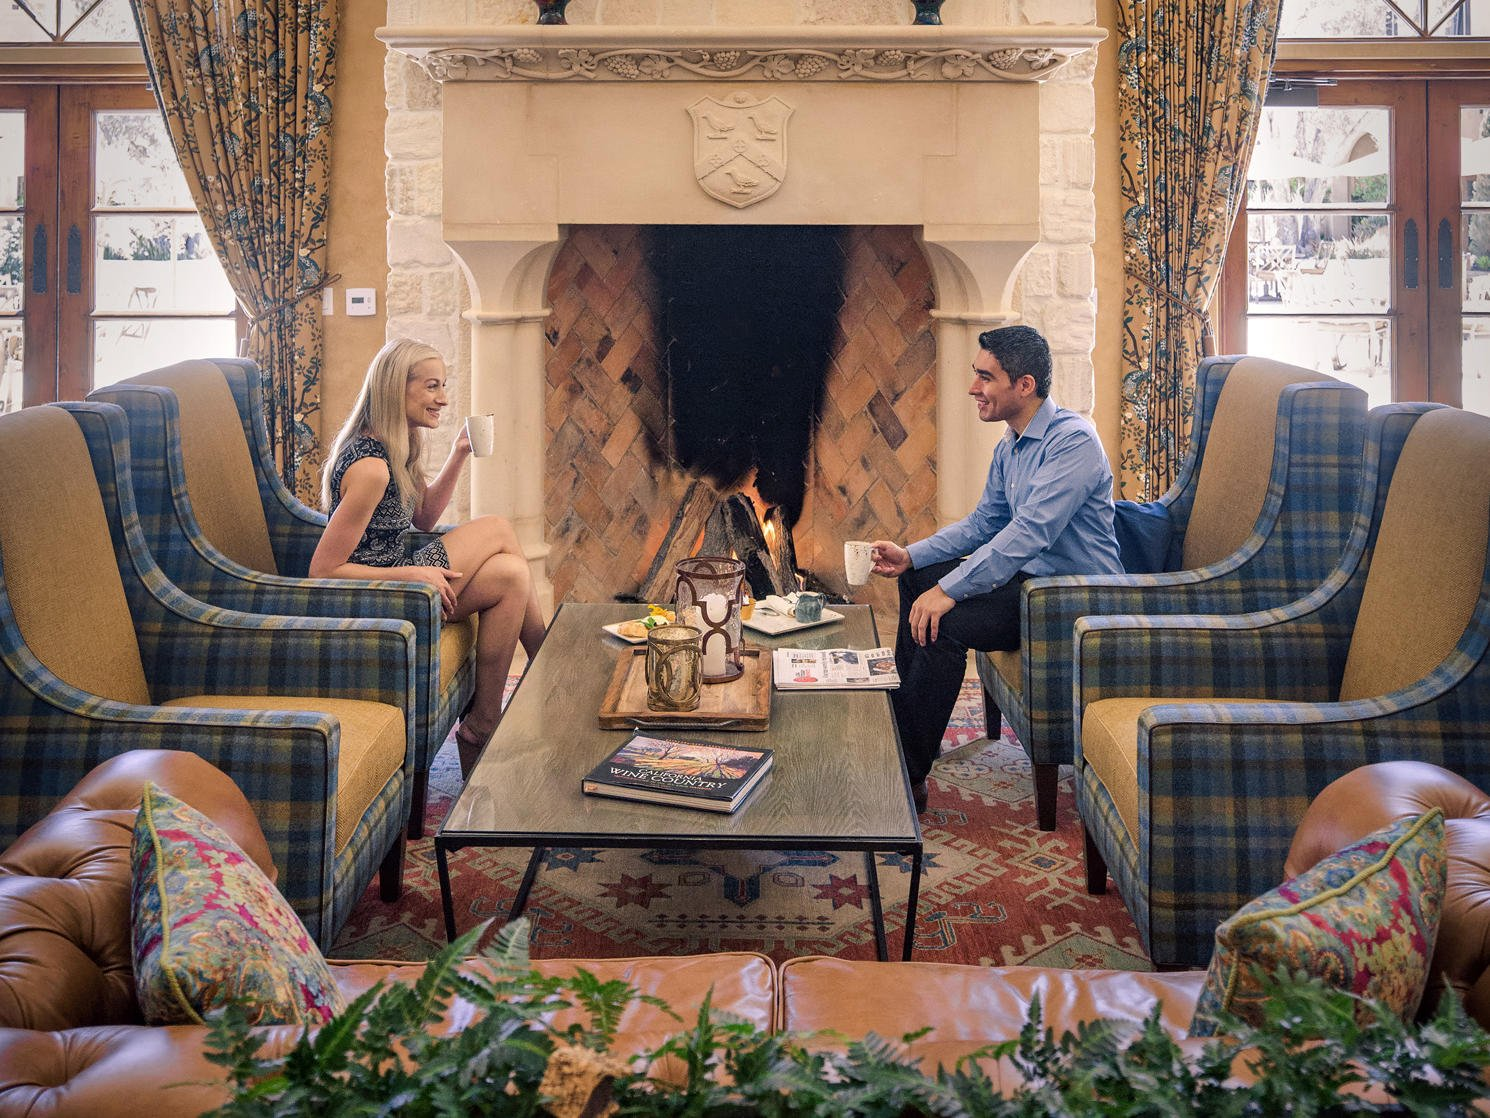 Man and women drinking coffee in front of fireplace